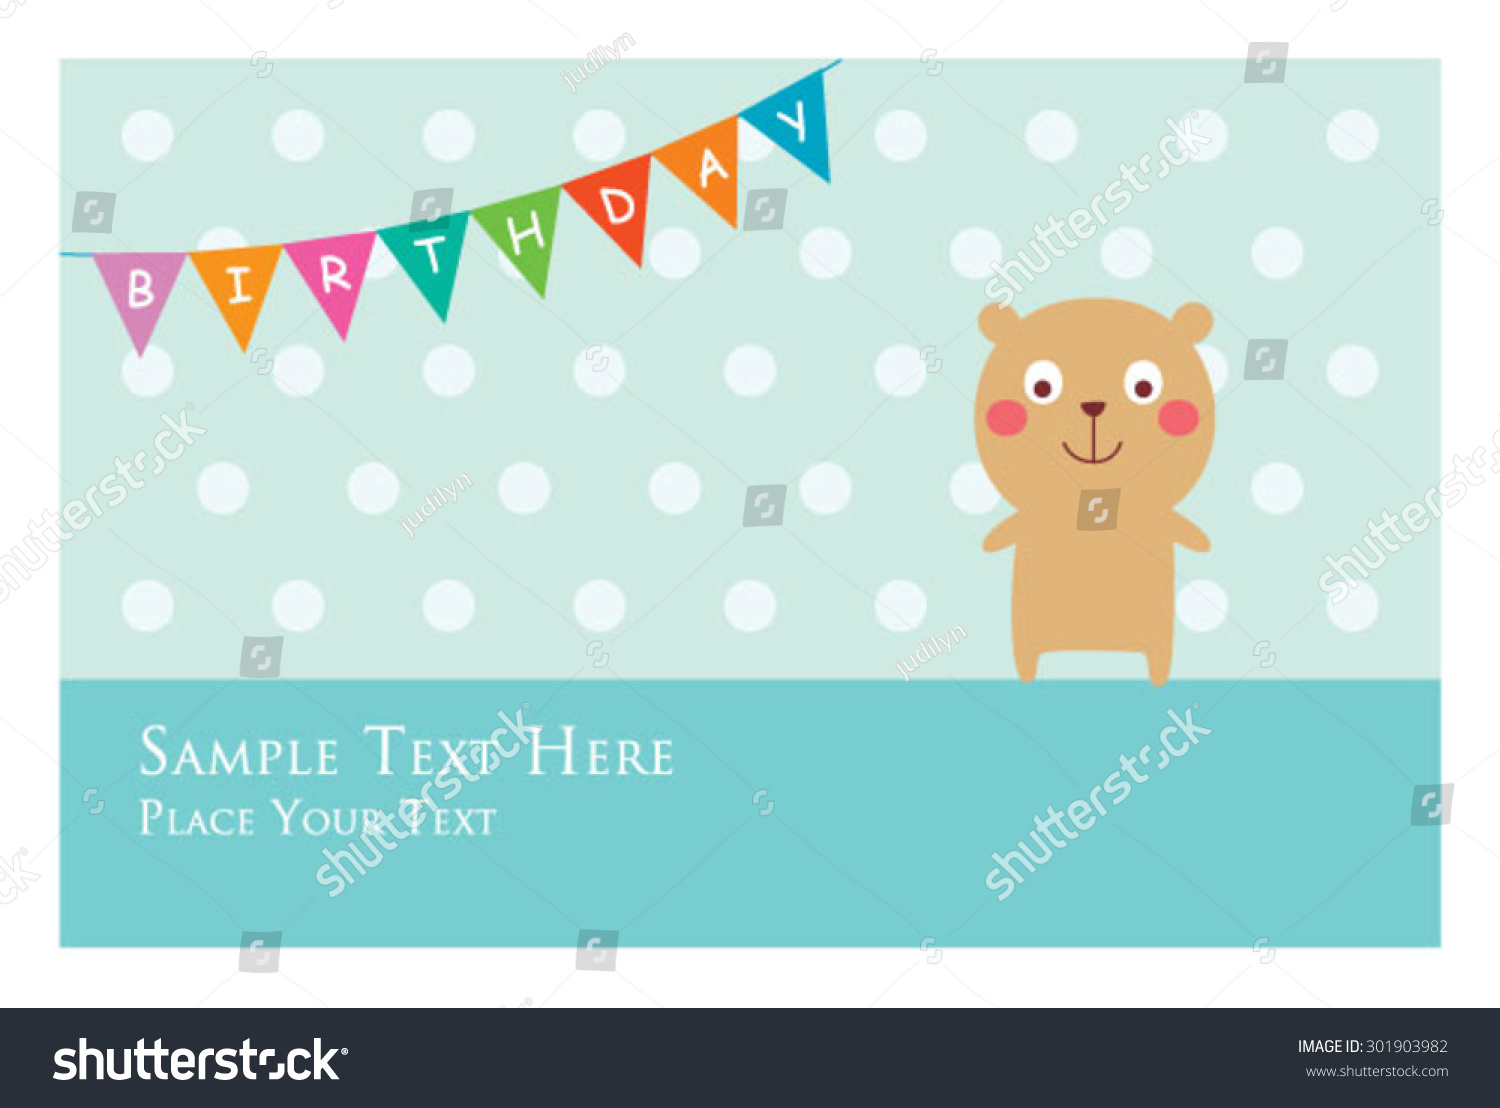 Cute Teddy Bear Birthday Invitation Card Stock Vector 301903982 ...